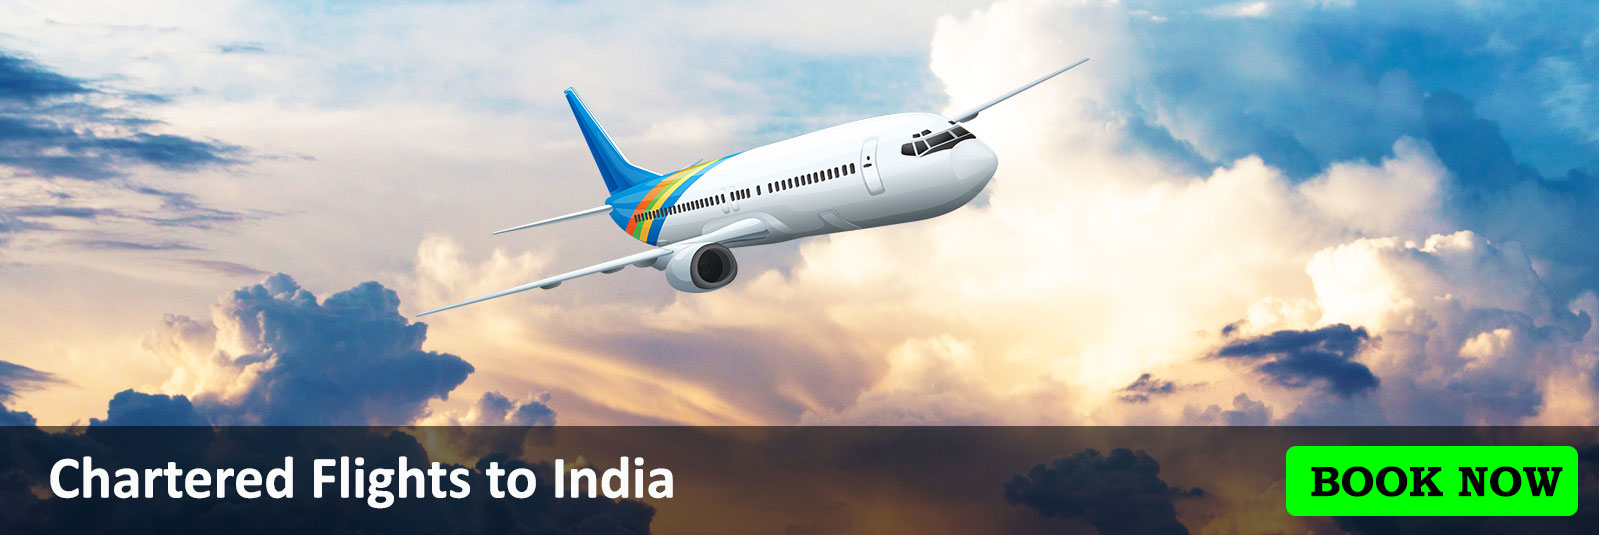 Book Chartered Flights to India from Dadabhai Travel